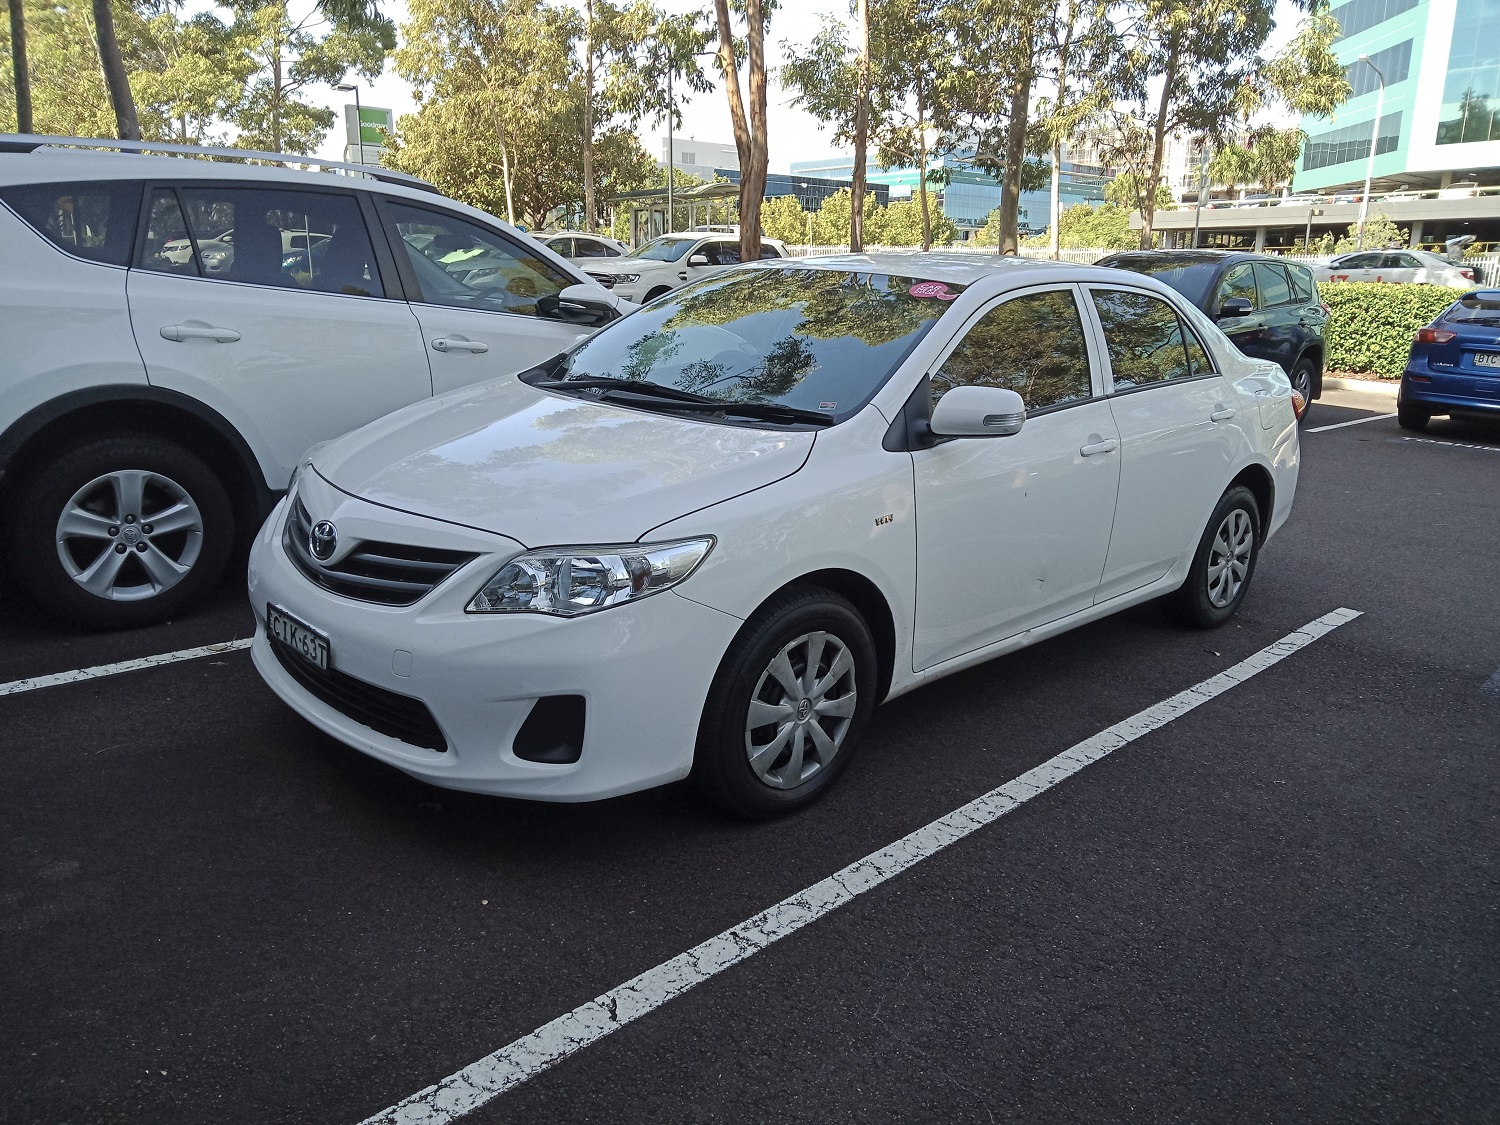 Picture of Santiago's 2012 Toyota Corolla